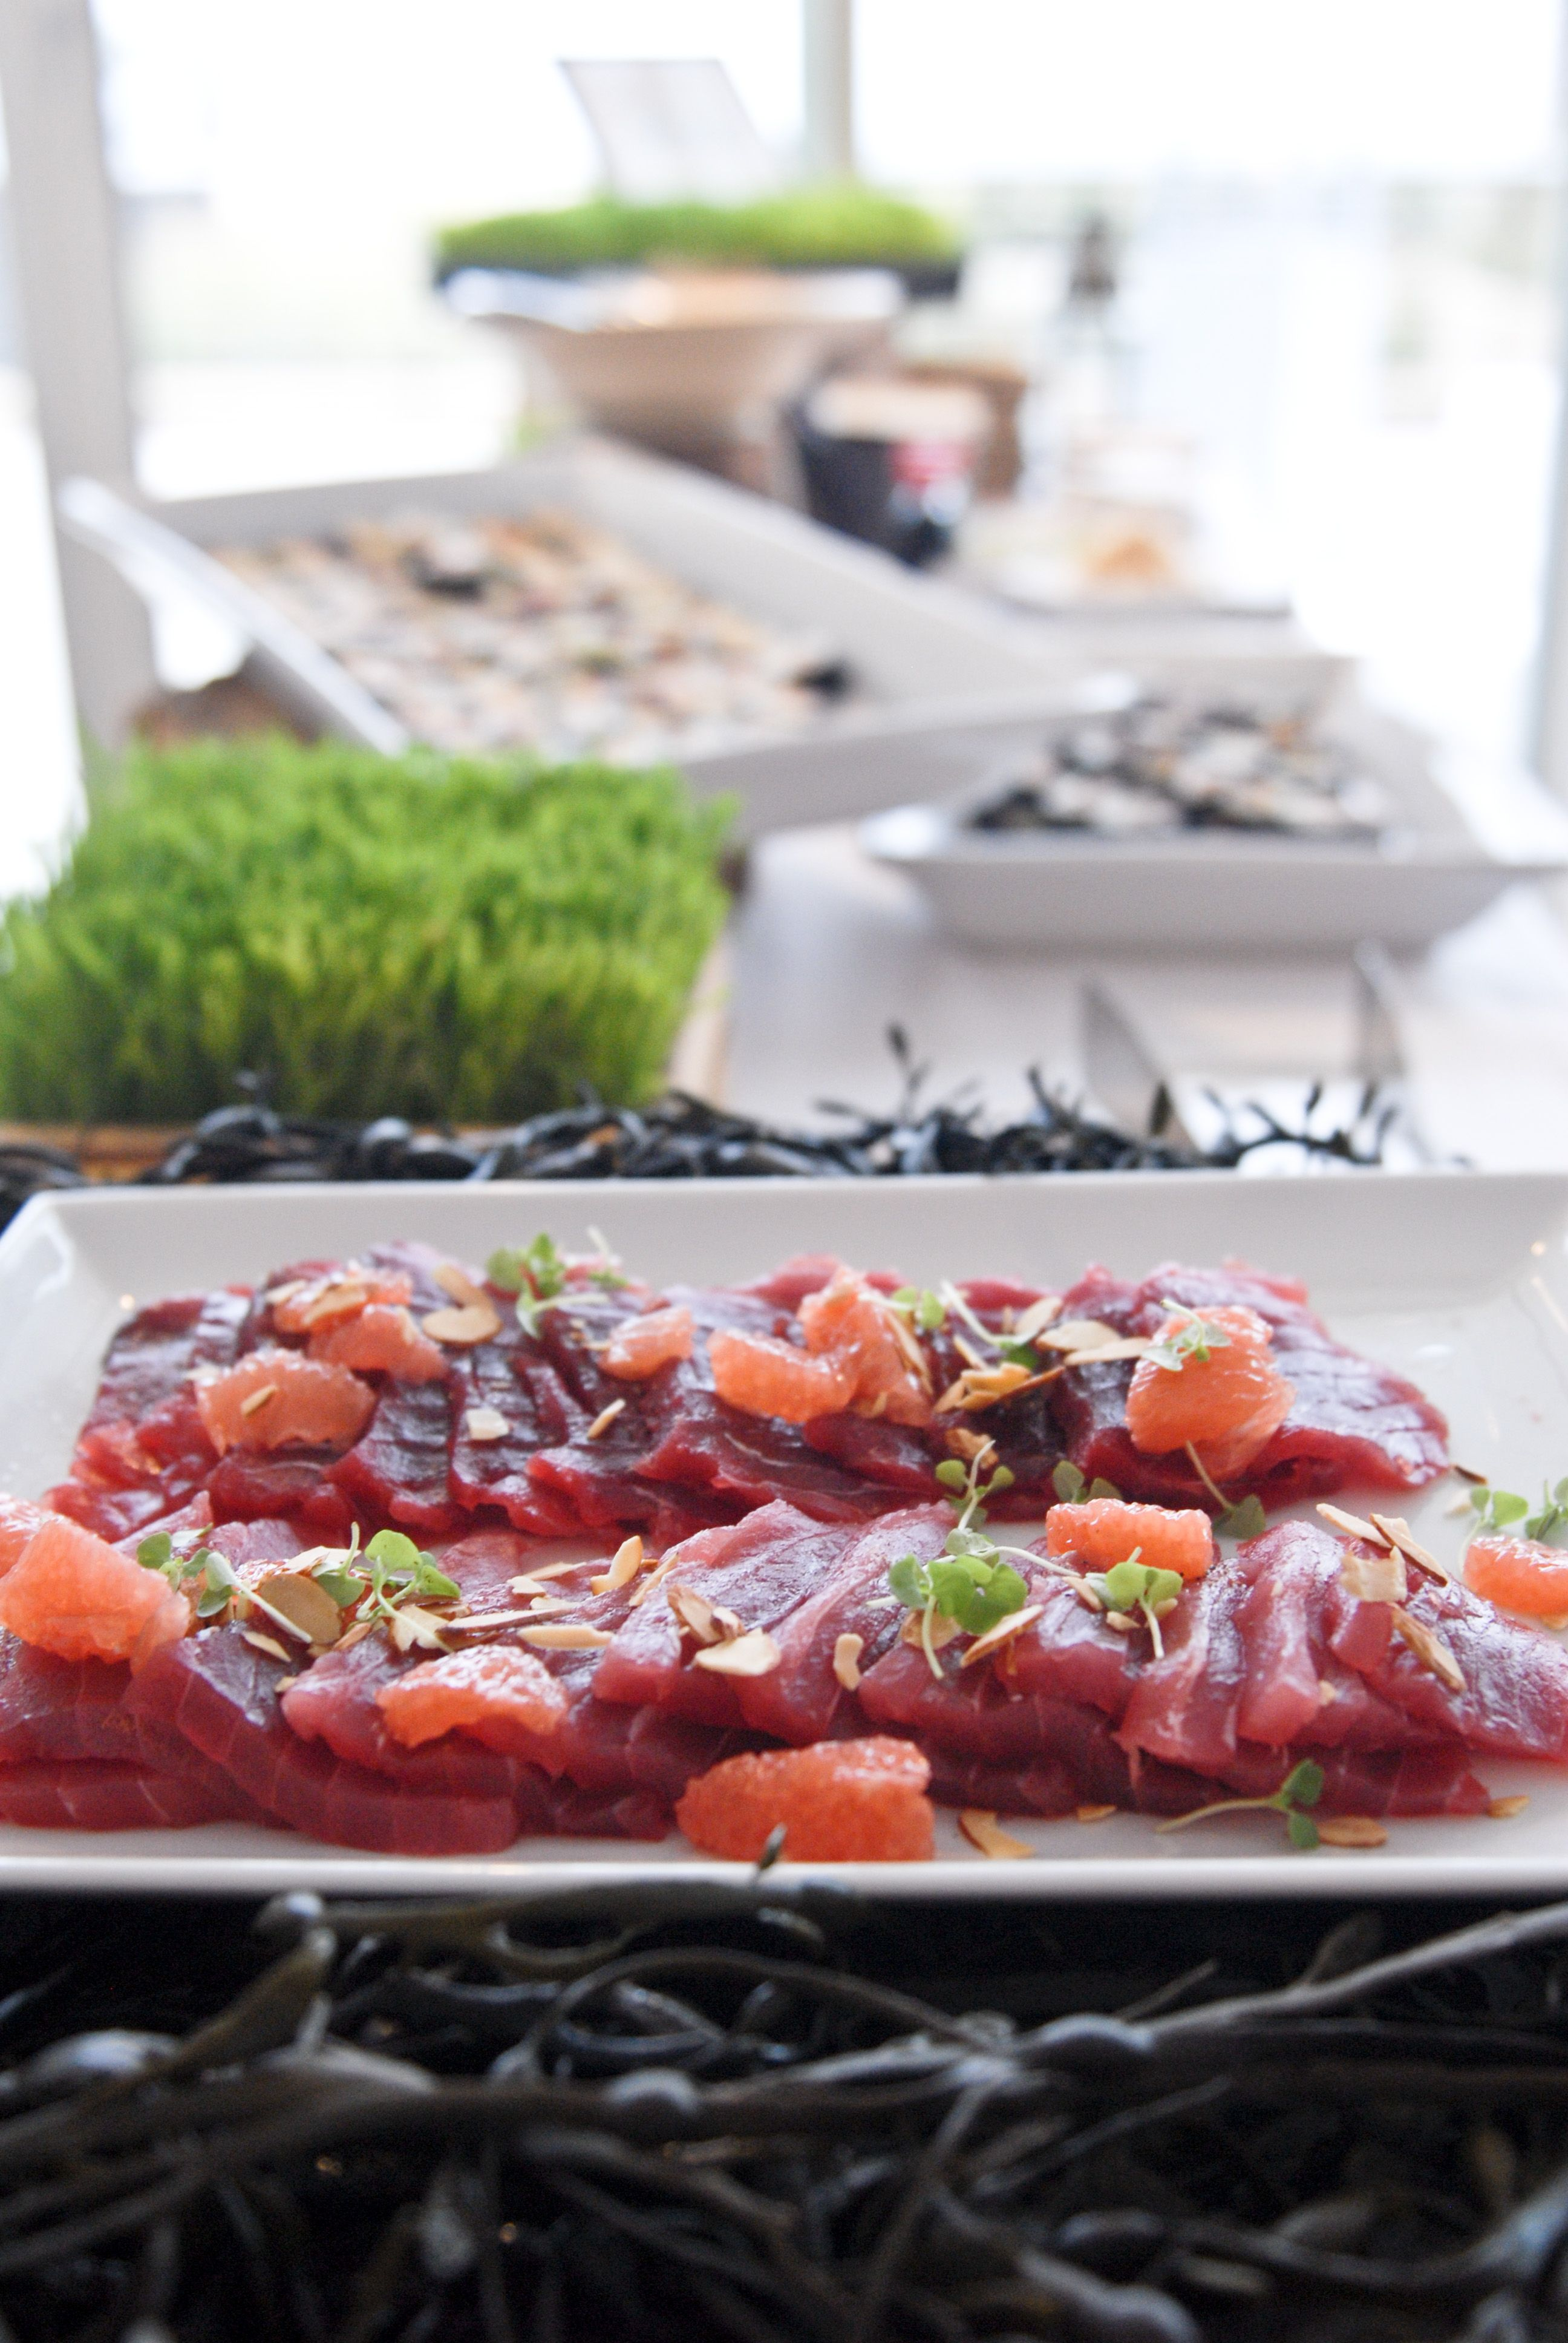 Seafood Station Event Catering Premium Food Corporate Catering